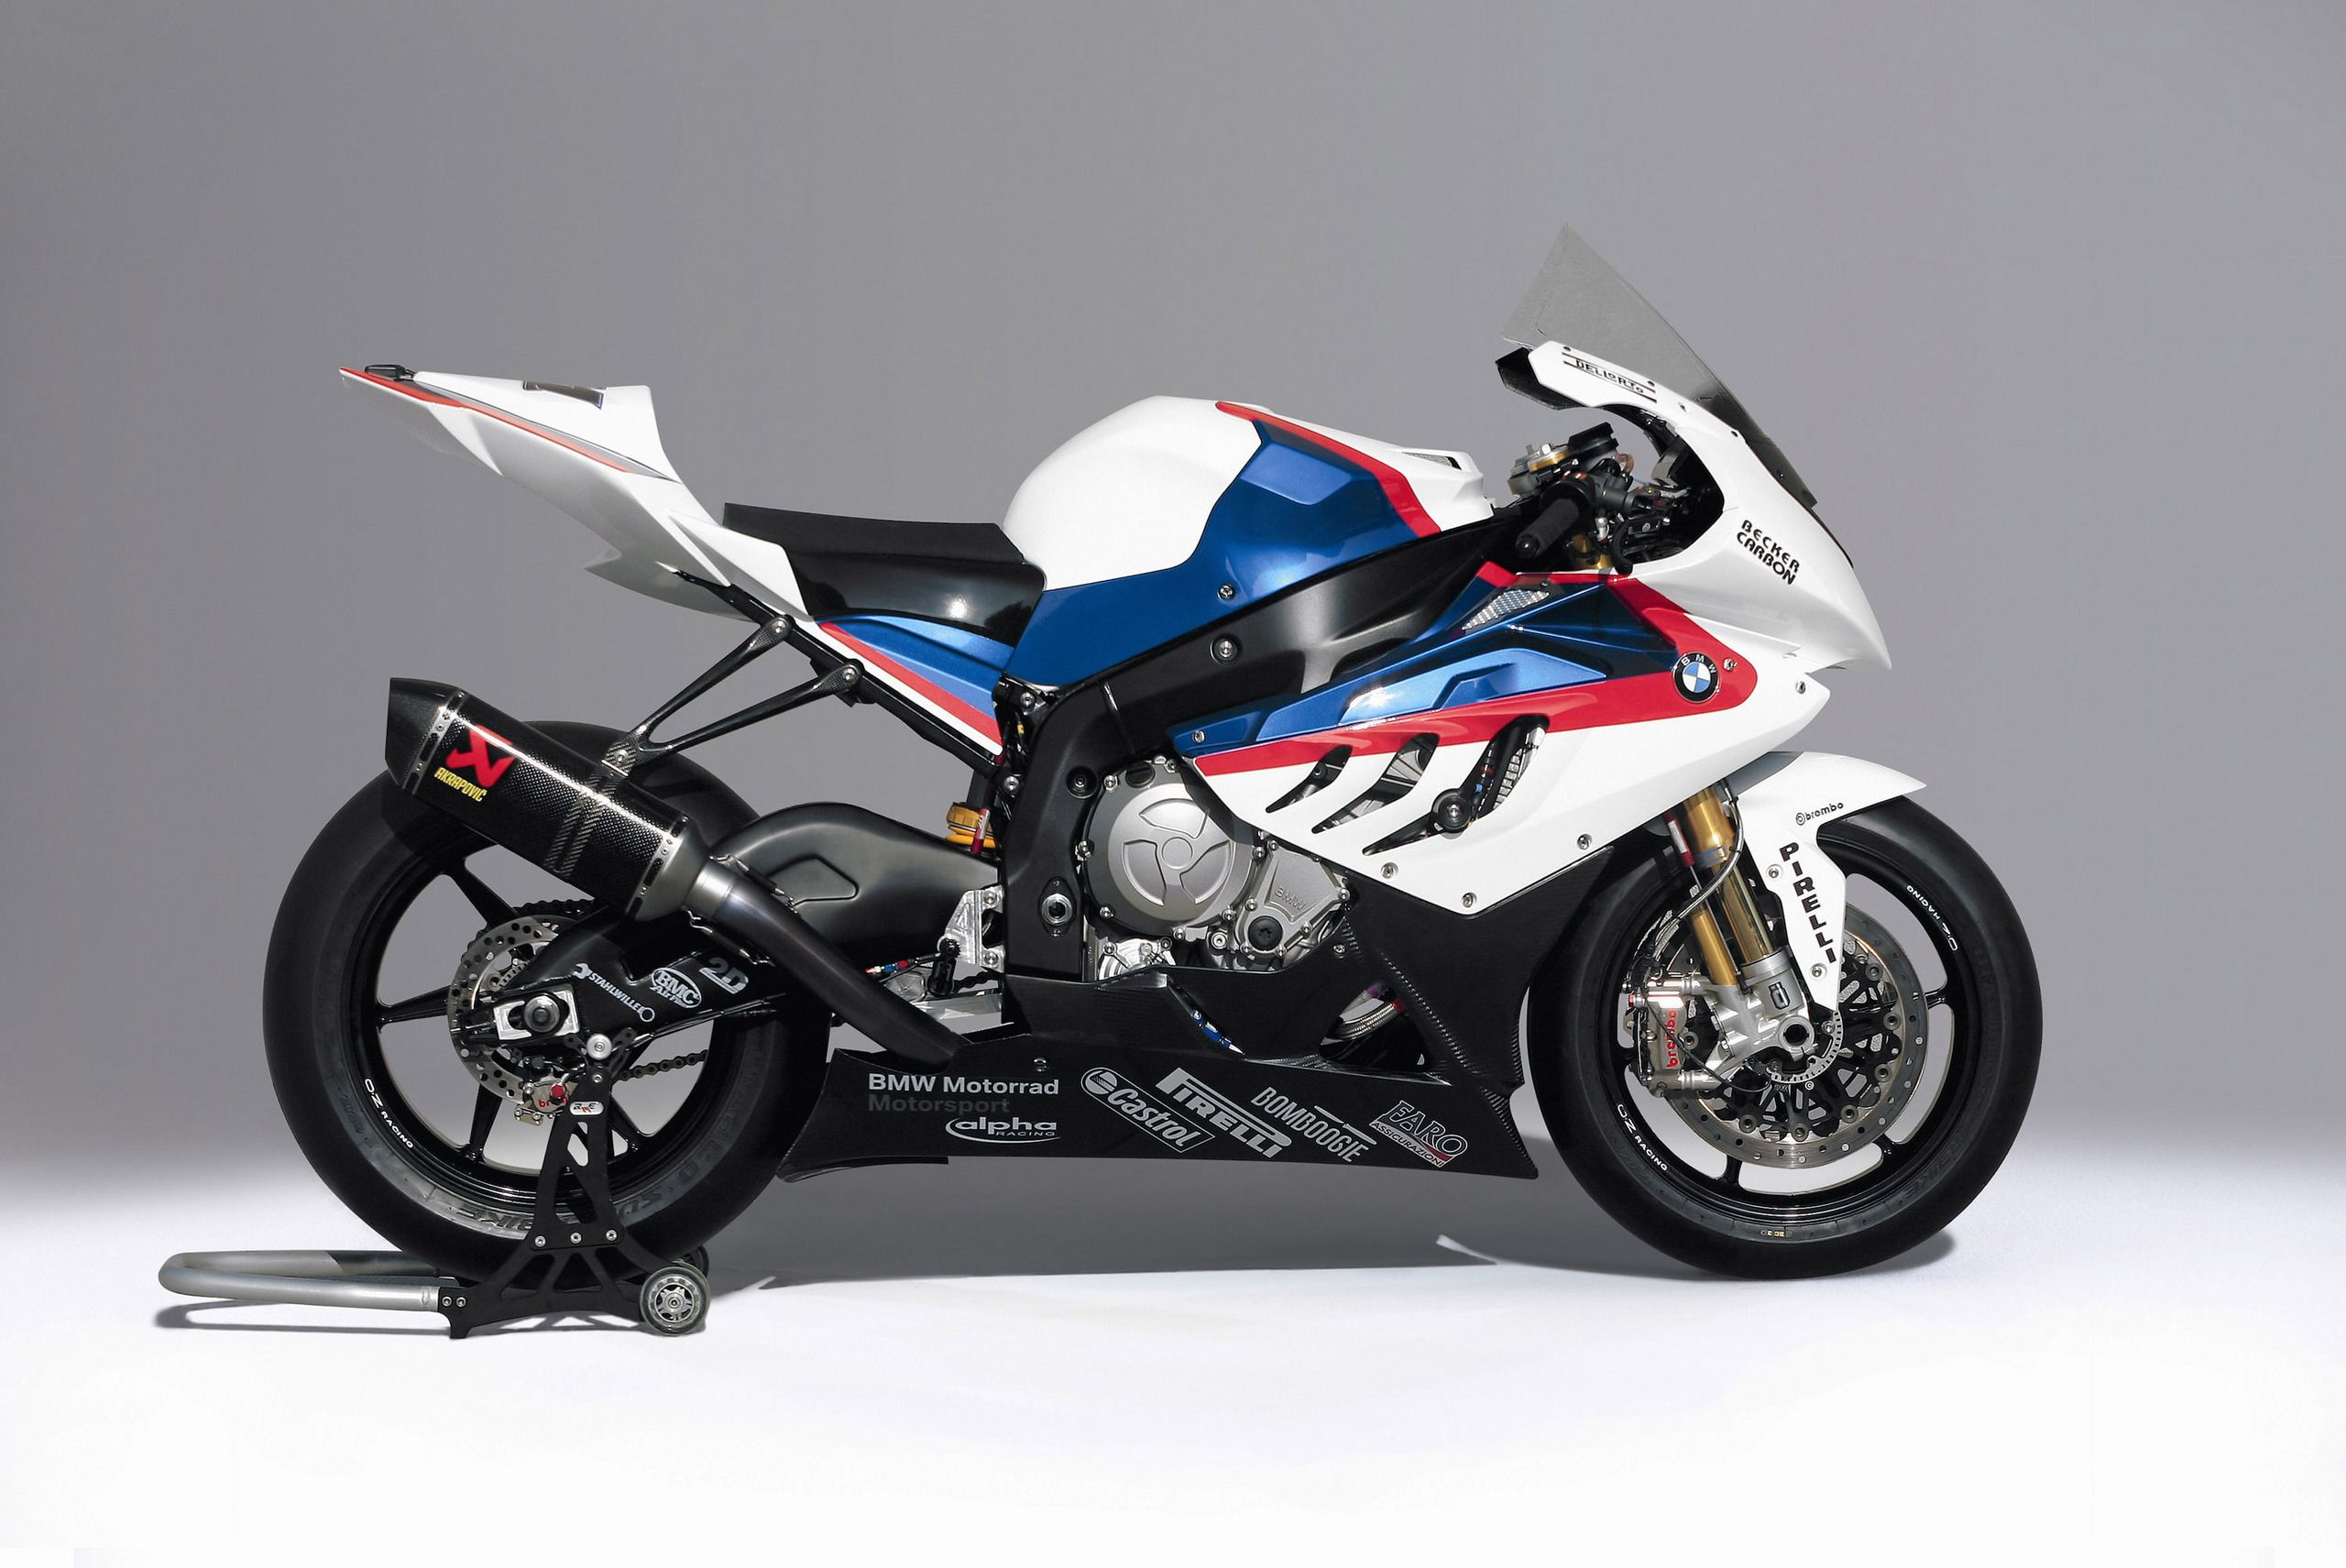 costa bmws moto s bikes european guide superstock canada superbike rides easyrace graphicbikes quickest championship cev the from bike bmw team